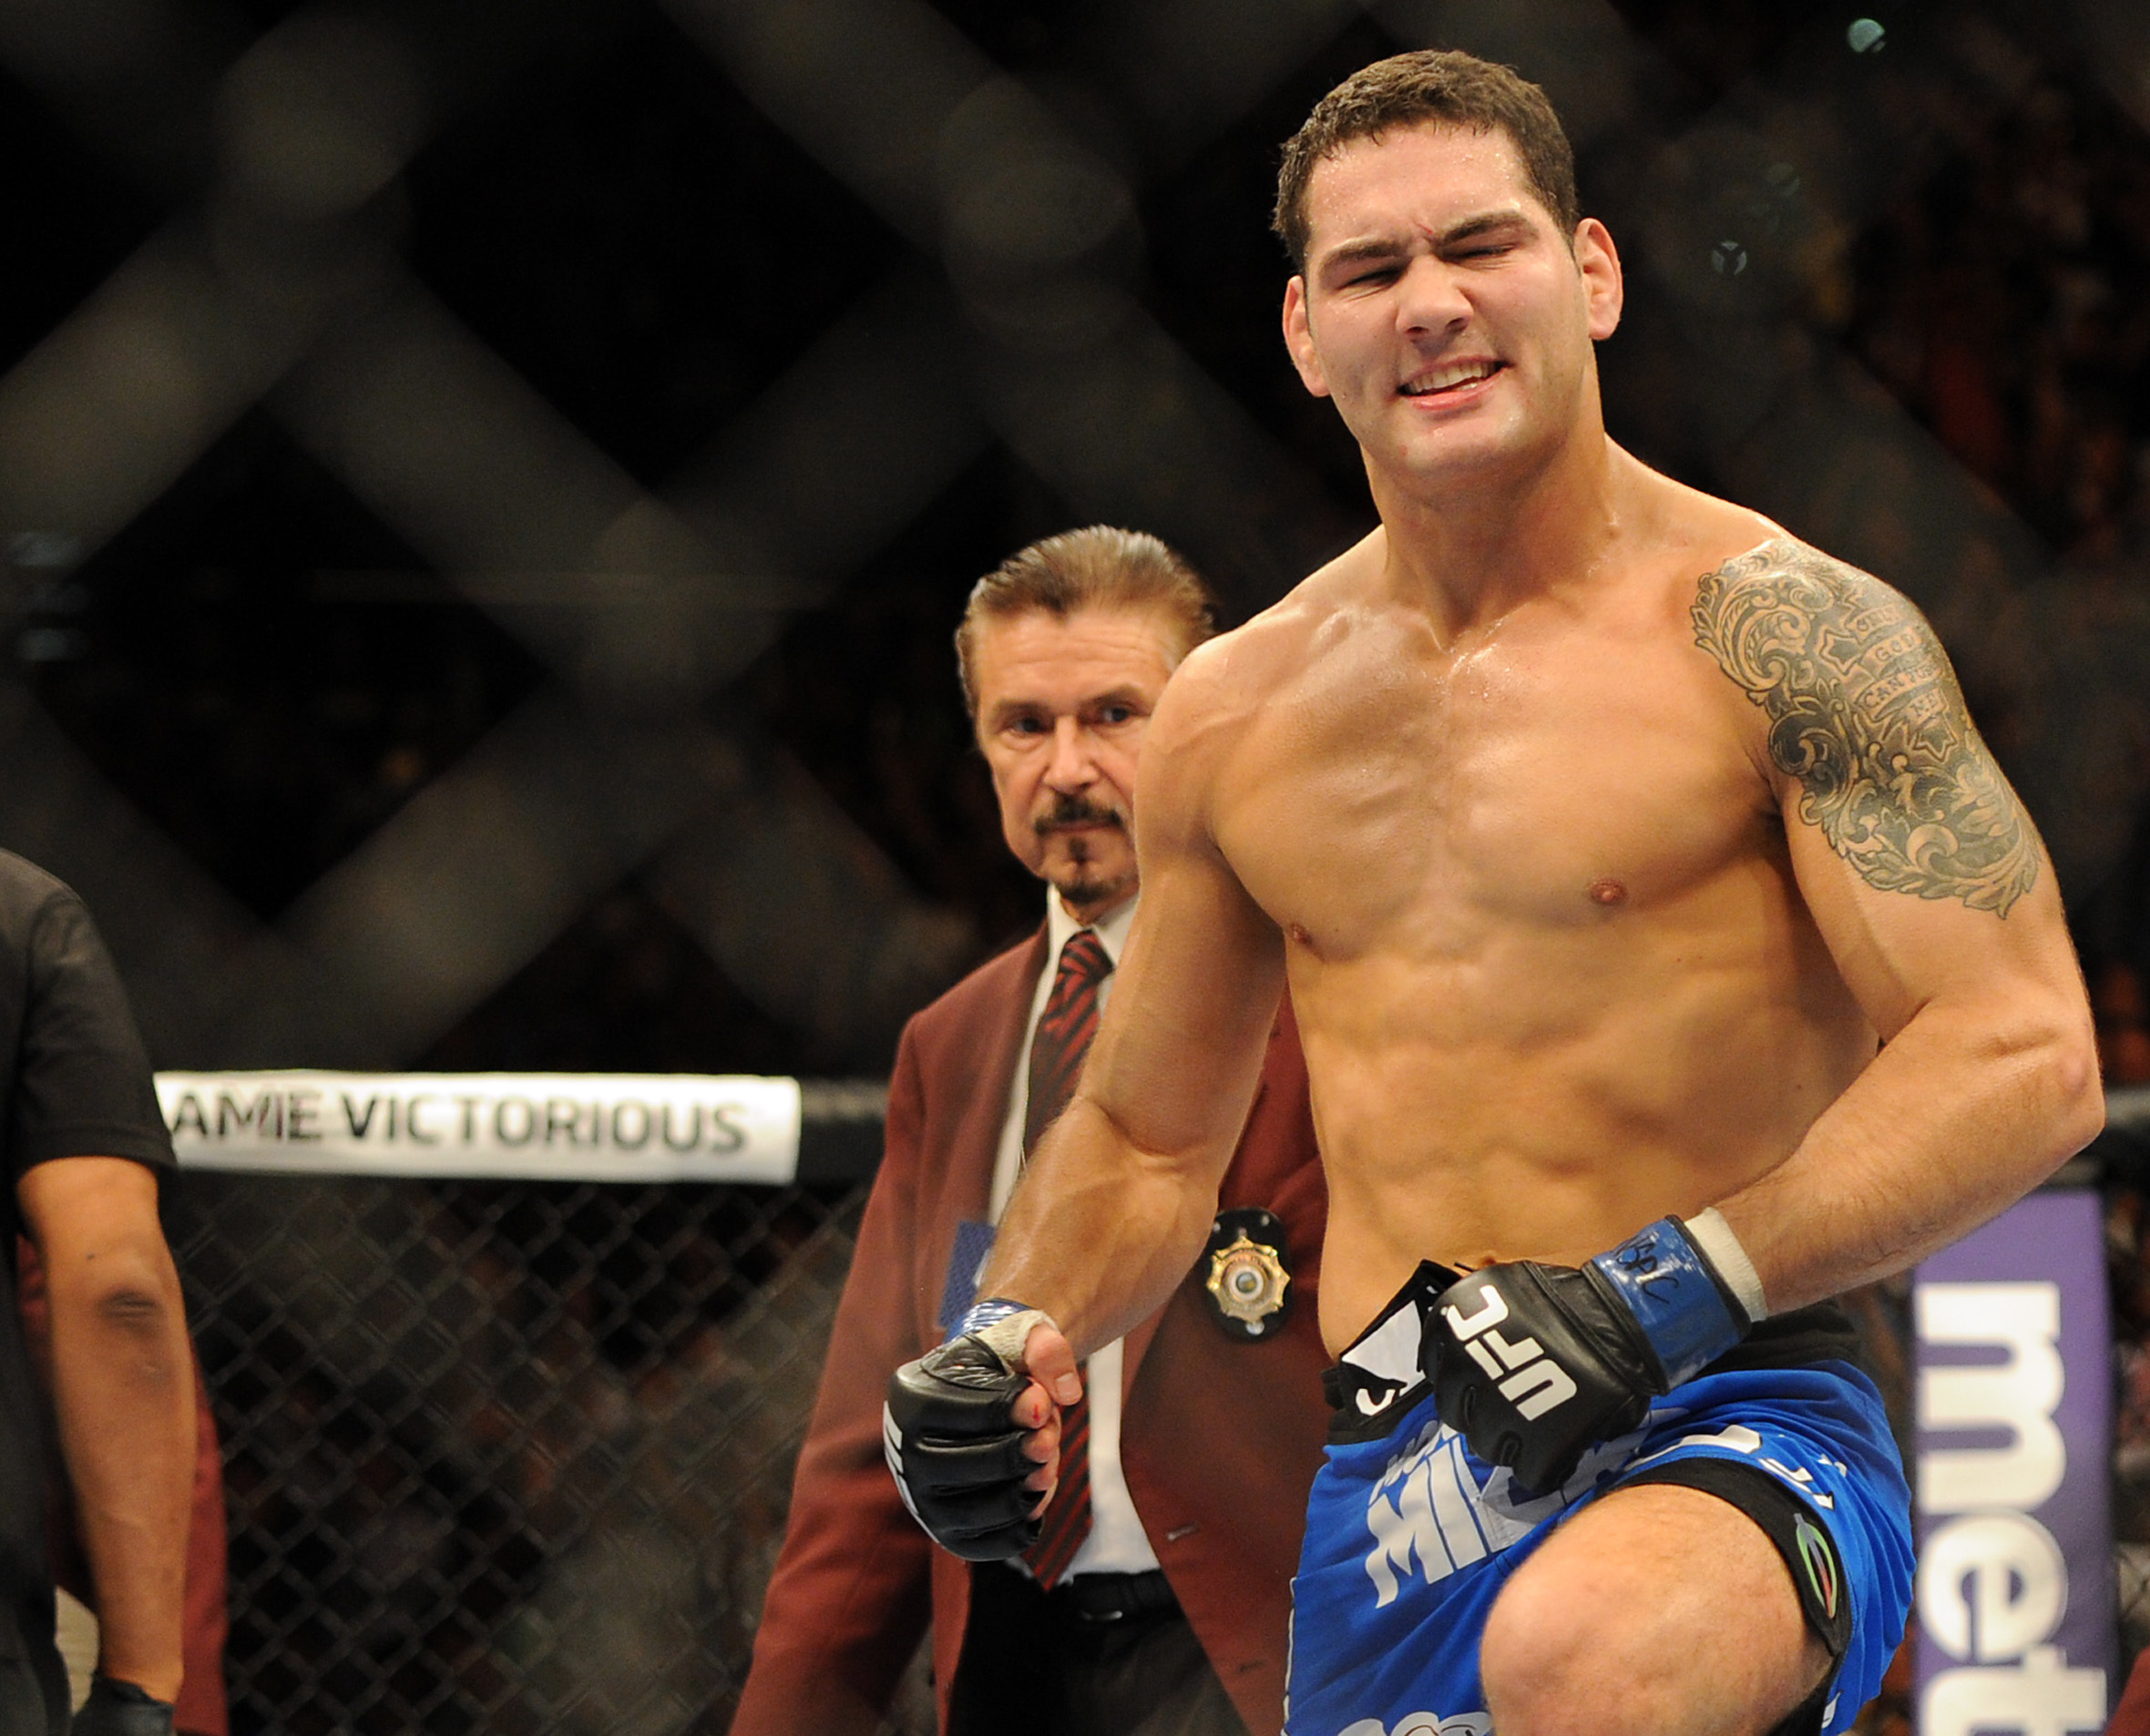 Chris Weidman celebrates after knocking out Anderson Silva. (USA Today)